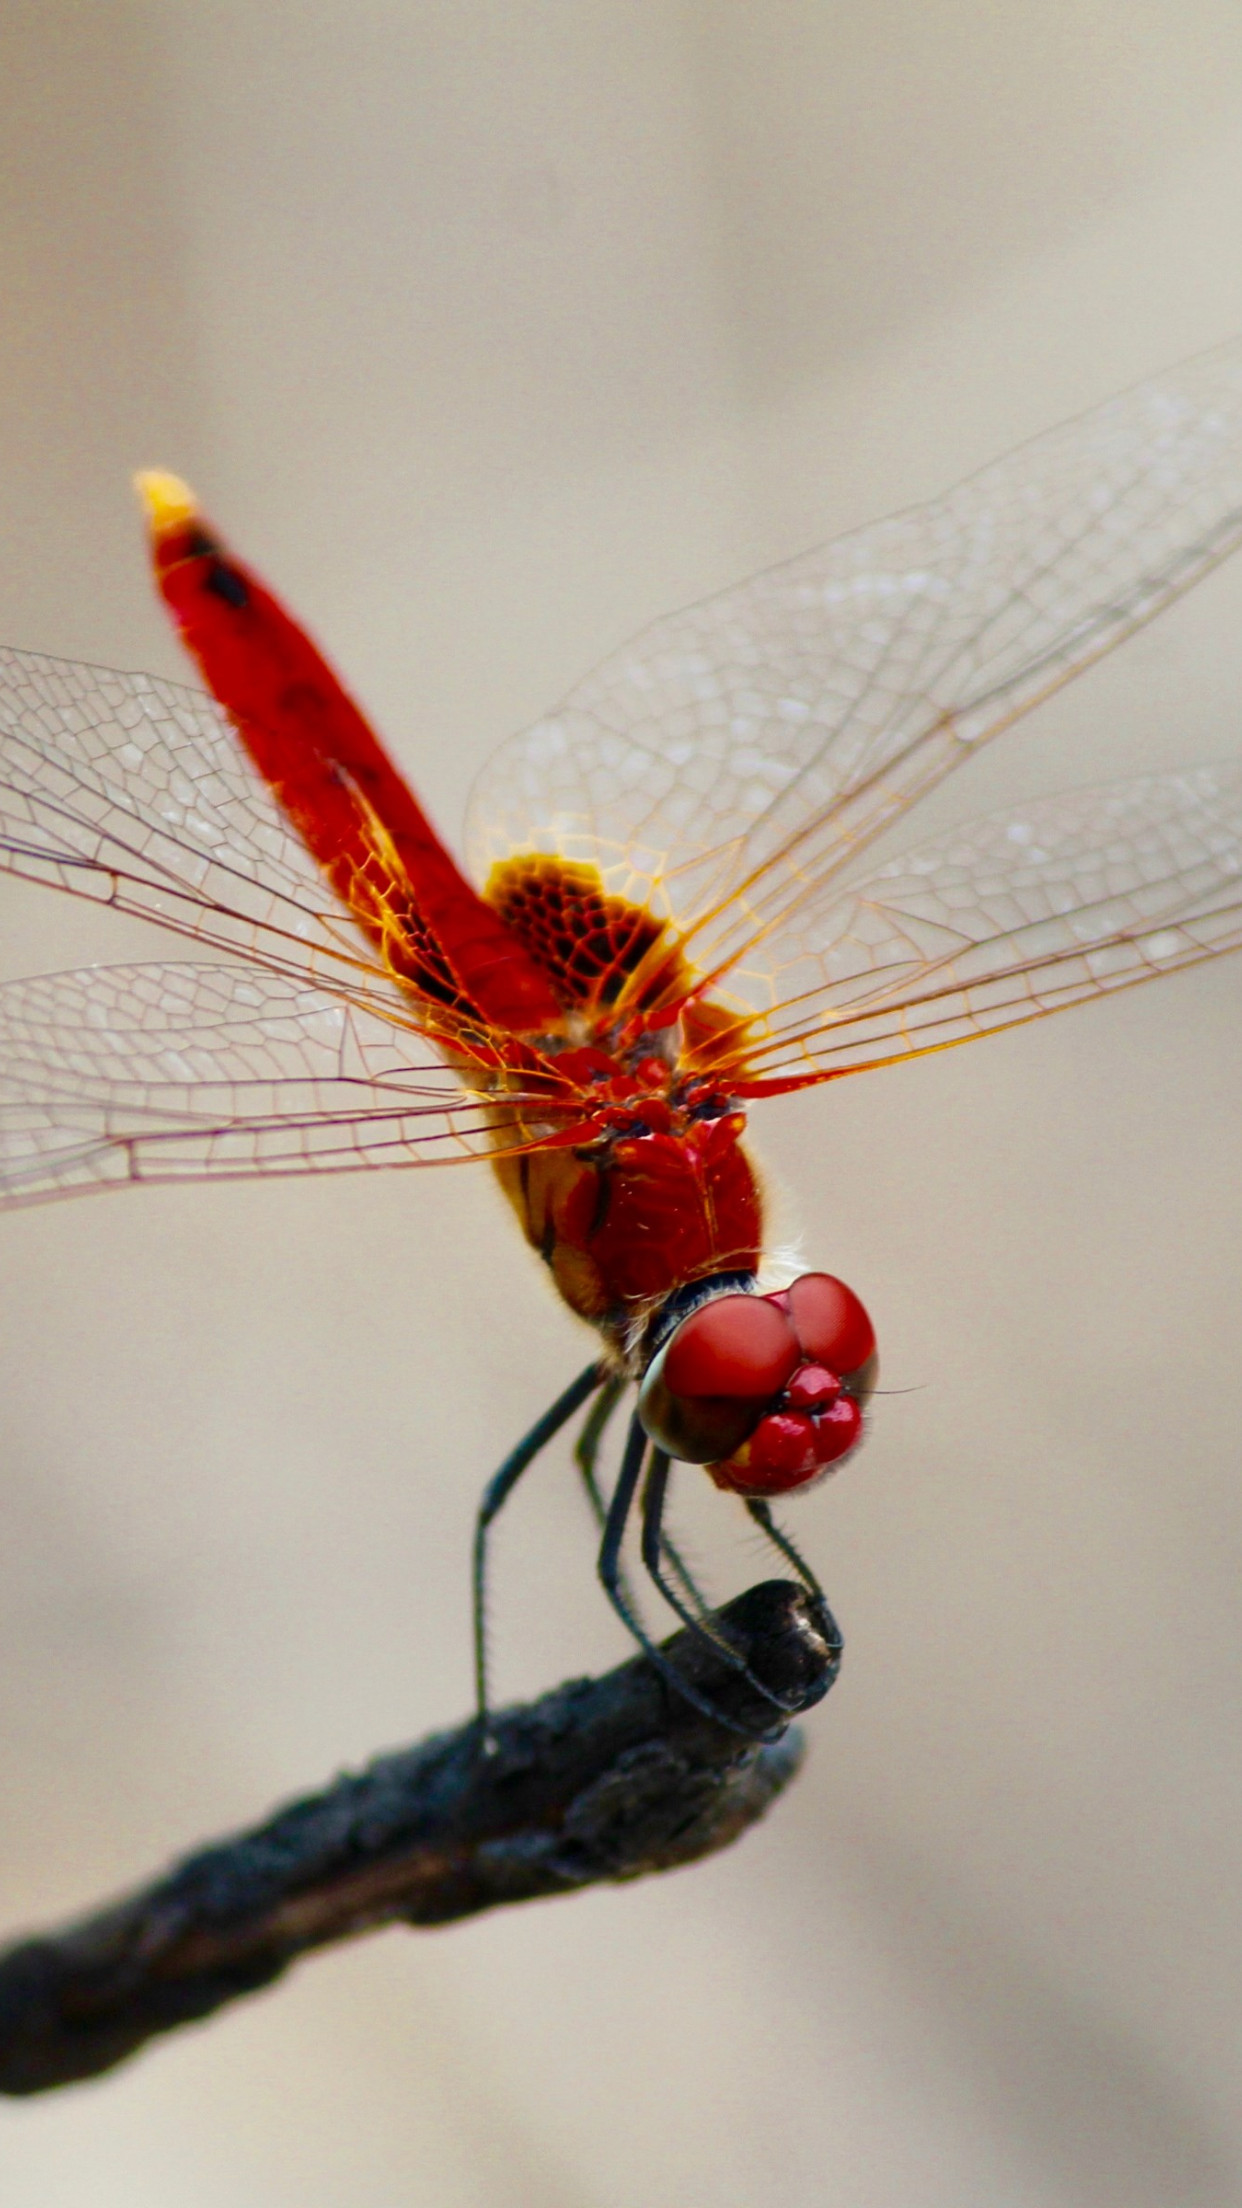 Red dragonfly | 1242x2208 wallpaper